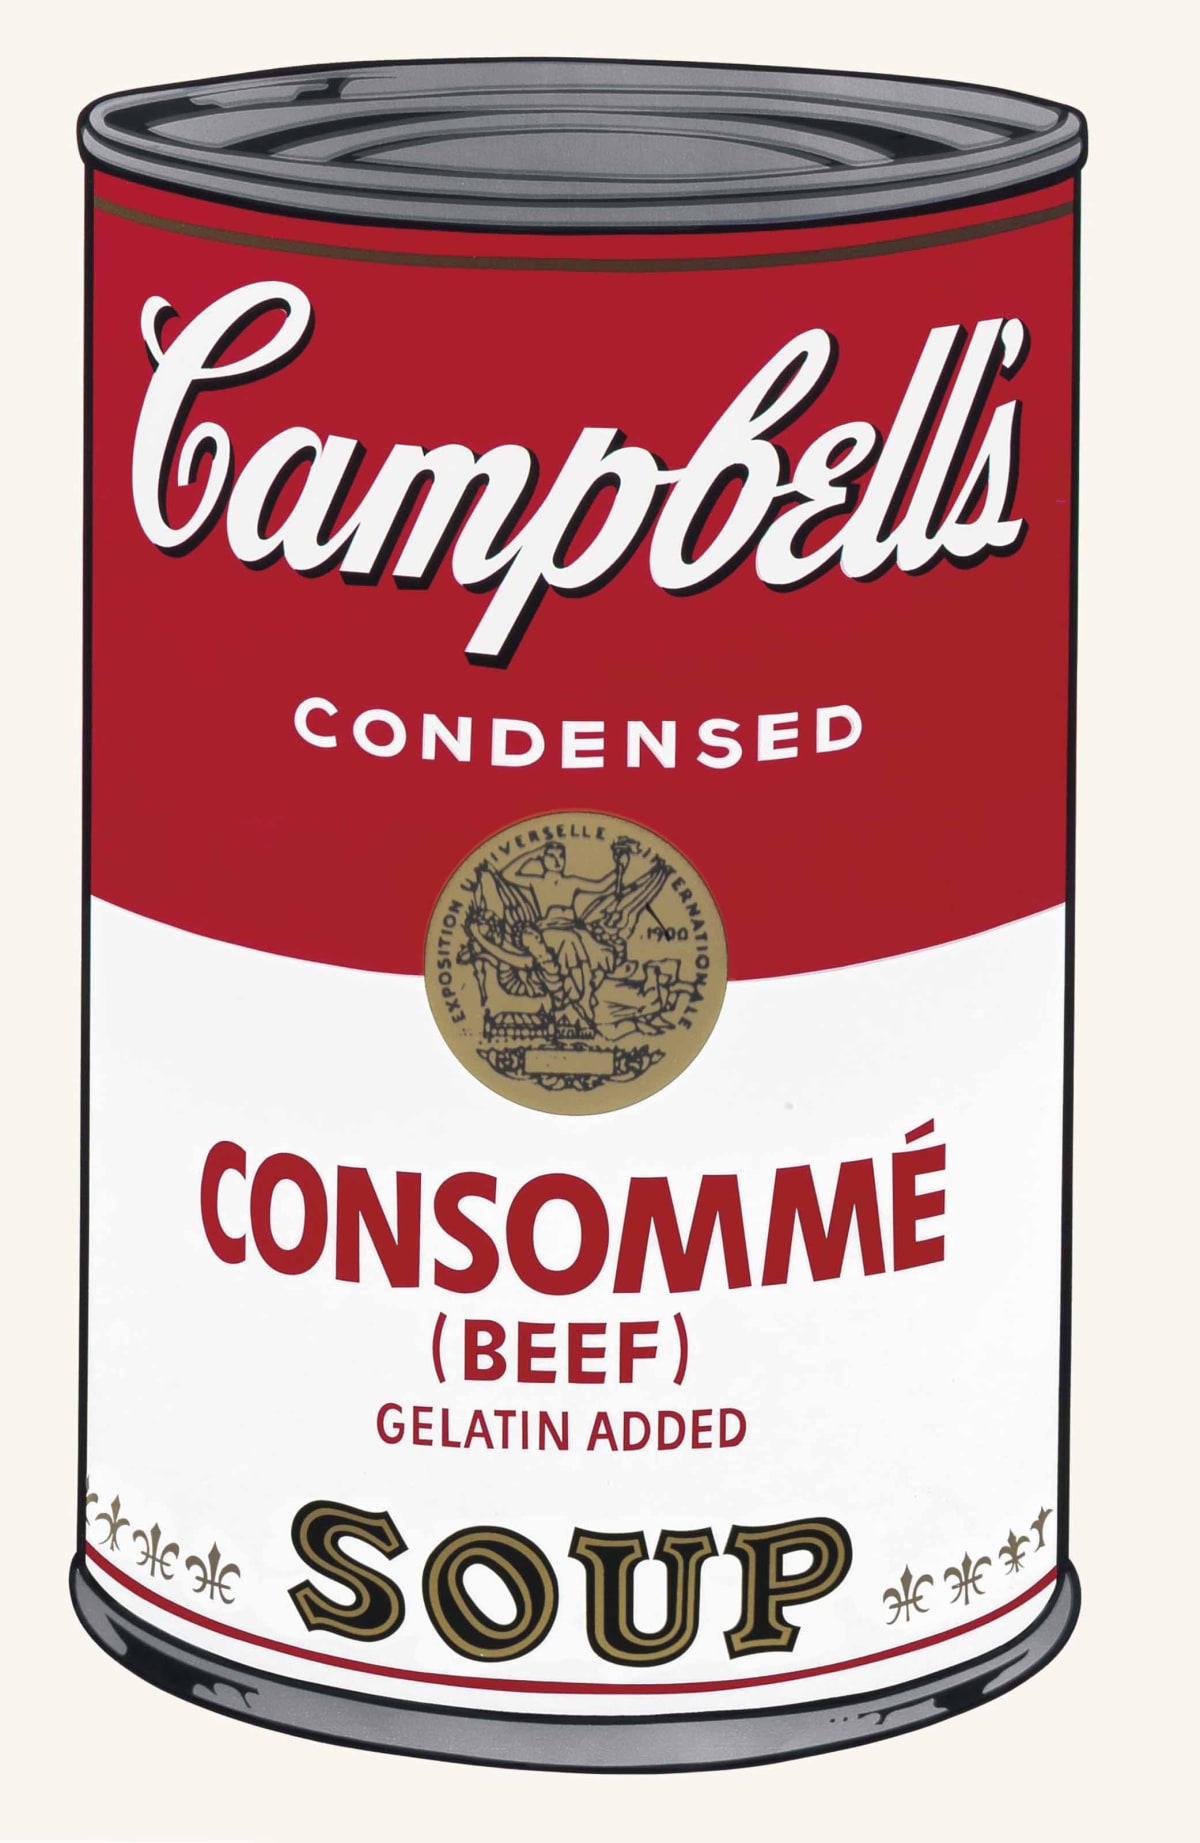 Campbell's I, Consomme (Beef), 1968 by Andy Warhol, Screenprint from an edition of 250 at Coskun Fine Art